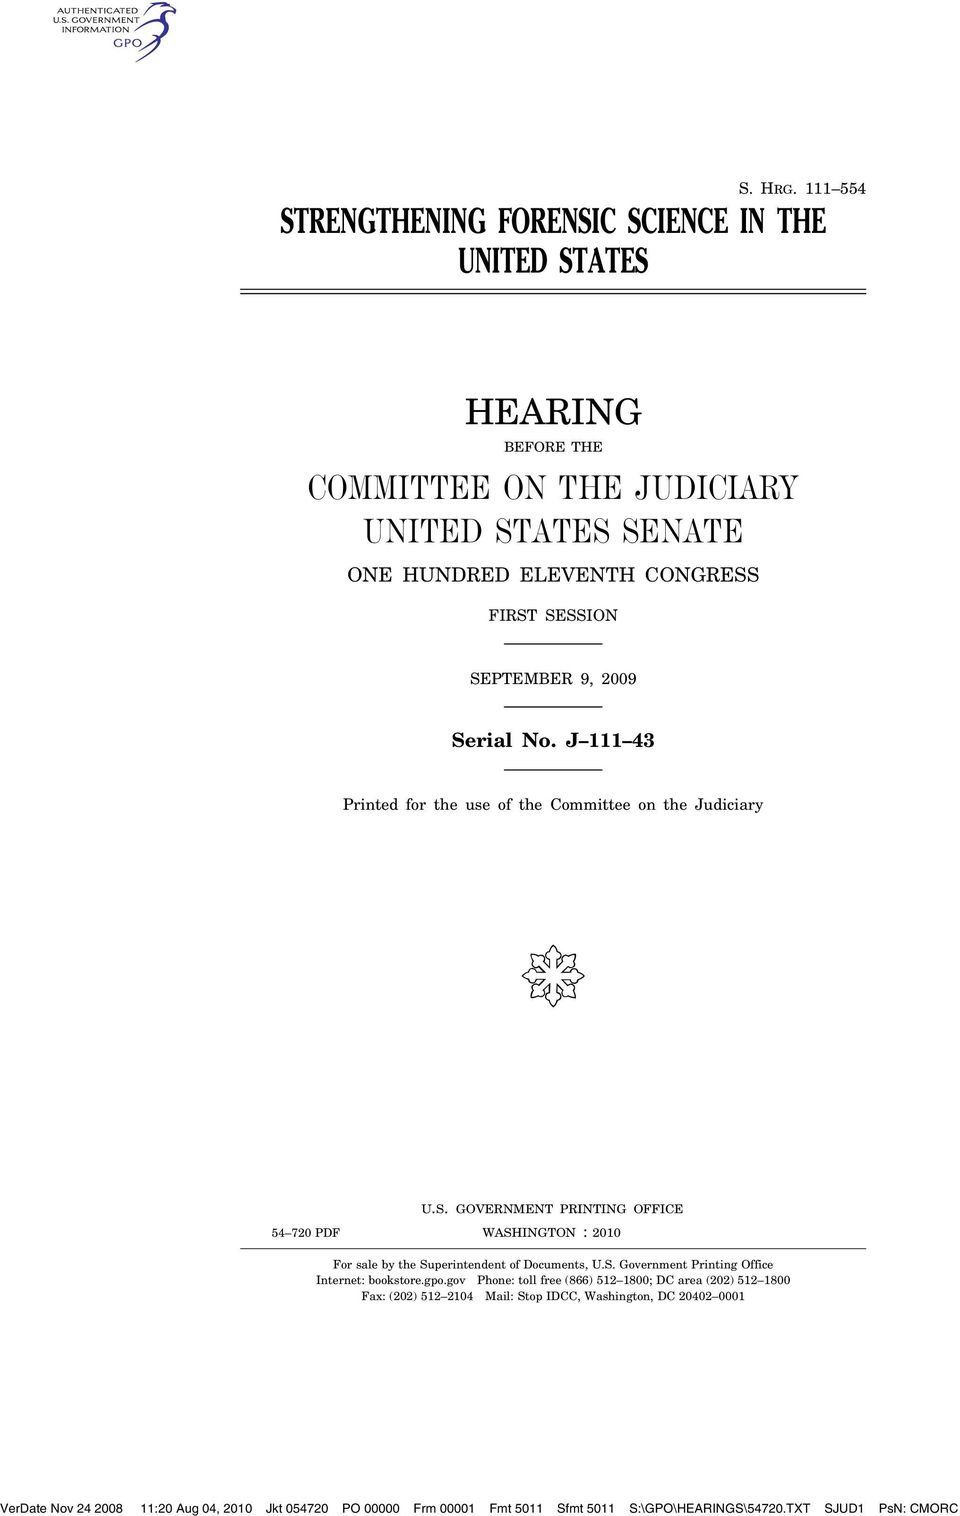 SEPTEMBER 9, 2009 Serial No. J 111 43 Printed for the use of the Committee on the Judiciary ( U.S. GOVERNMENT PRINTING OFFICE WASHINGTON 54 720 PDF : 2010 For sale by the Superintendent of Documents, U.